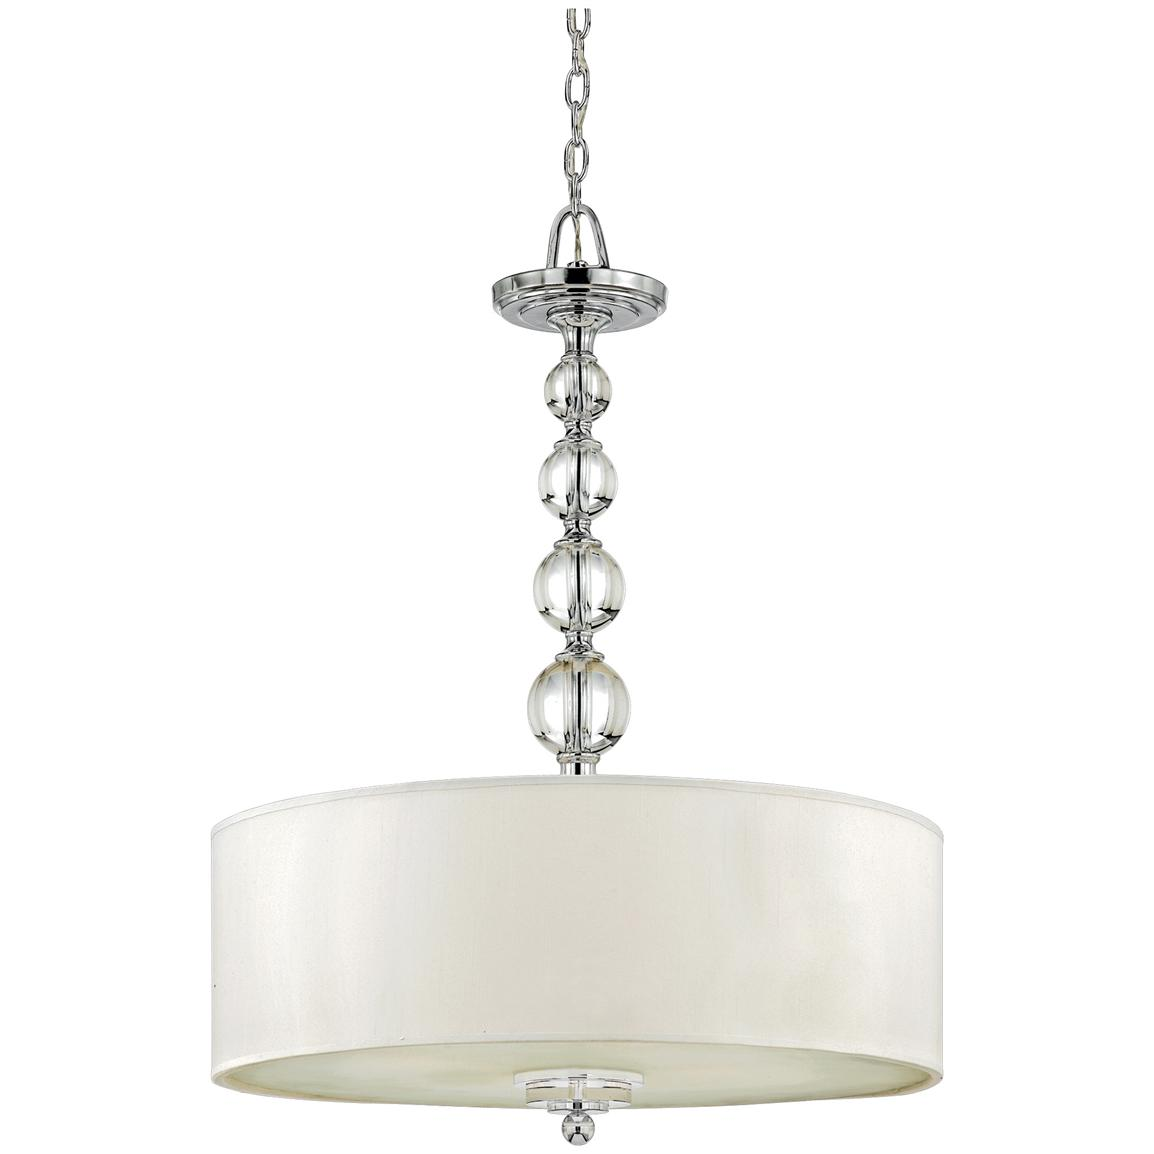 Downtown 4-light Pendant Fixture from Quoizel®, Polished Chrome